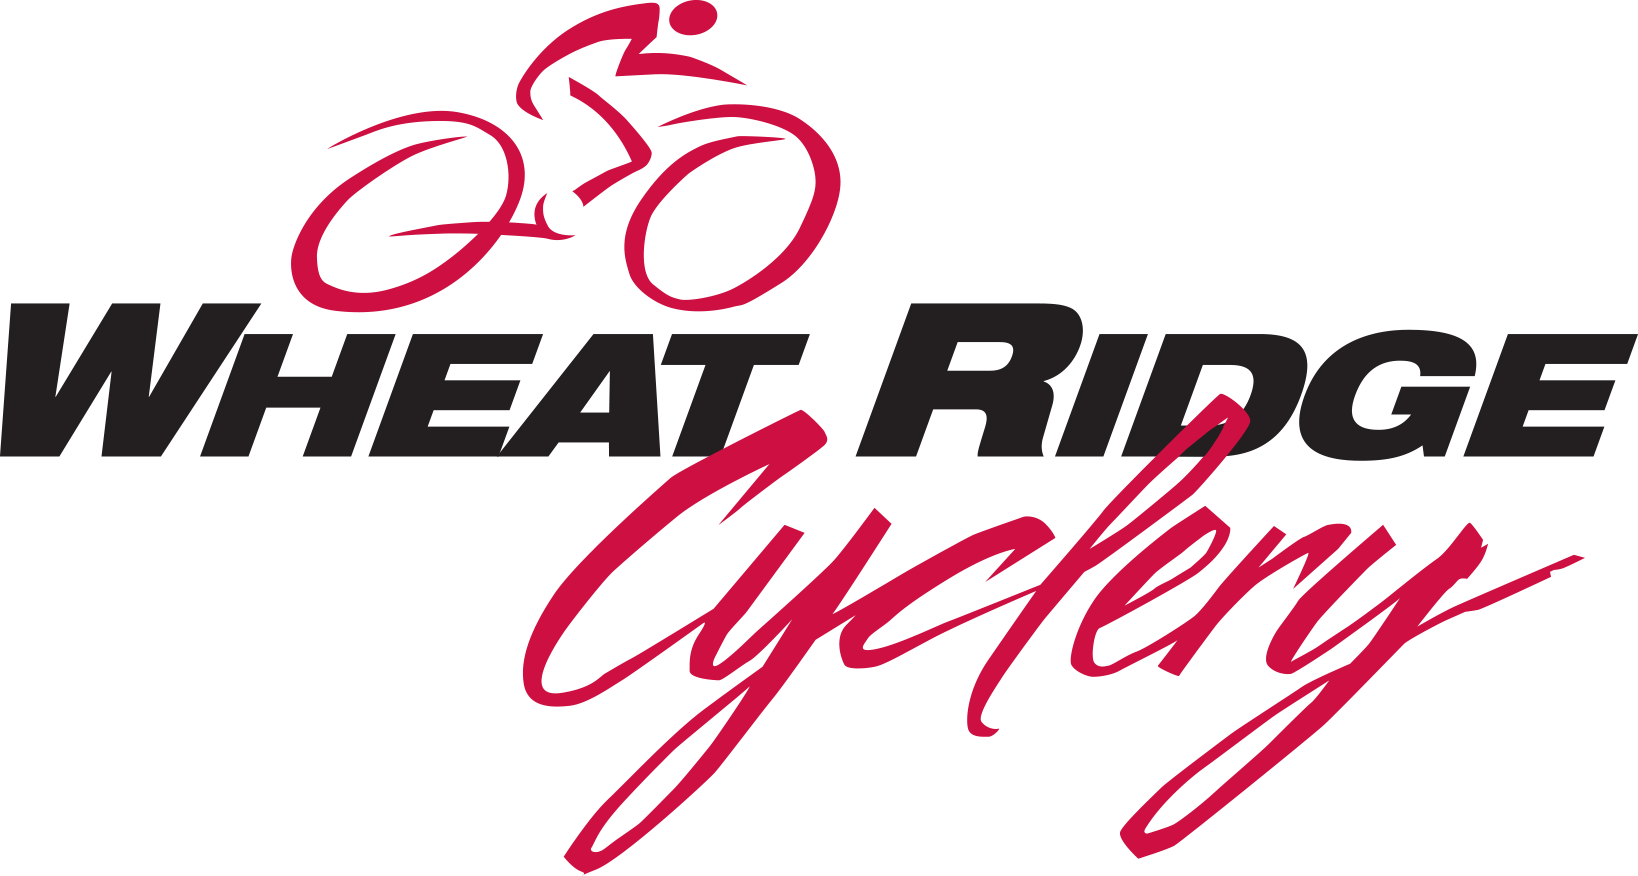 Wheat Ridge Cyclery - https://wheatridgecyclery.com/Colorado's Best Bike Shop since 1973. Offering unequaled customer service and knowledgeable, friendly staff. Quality, value and trust. Professional Fitting Services. Bicycles from Trek, Specialized, Yeti, Santa Cruz, Cervelo,and Seven.